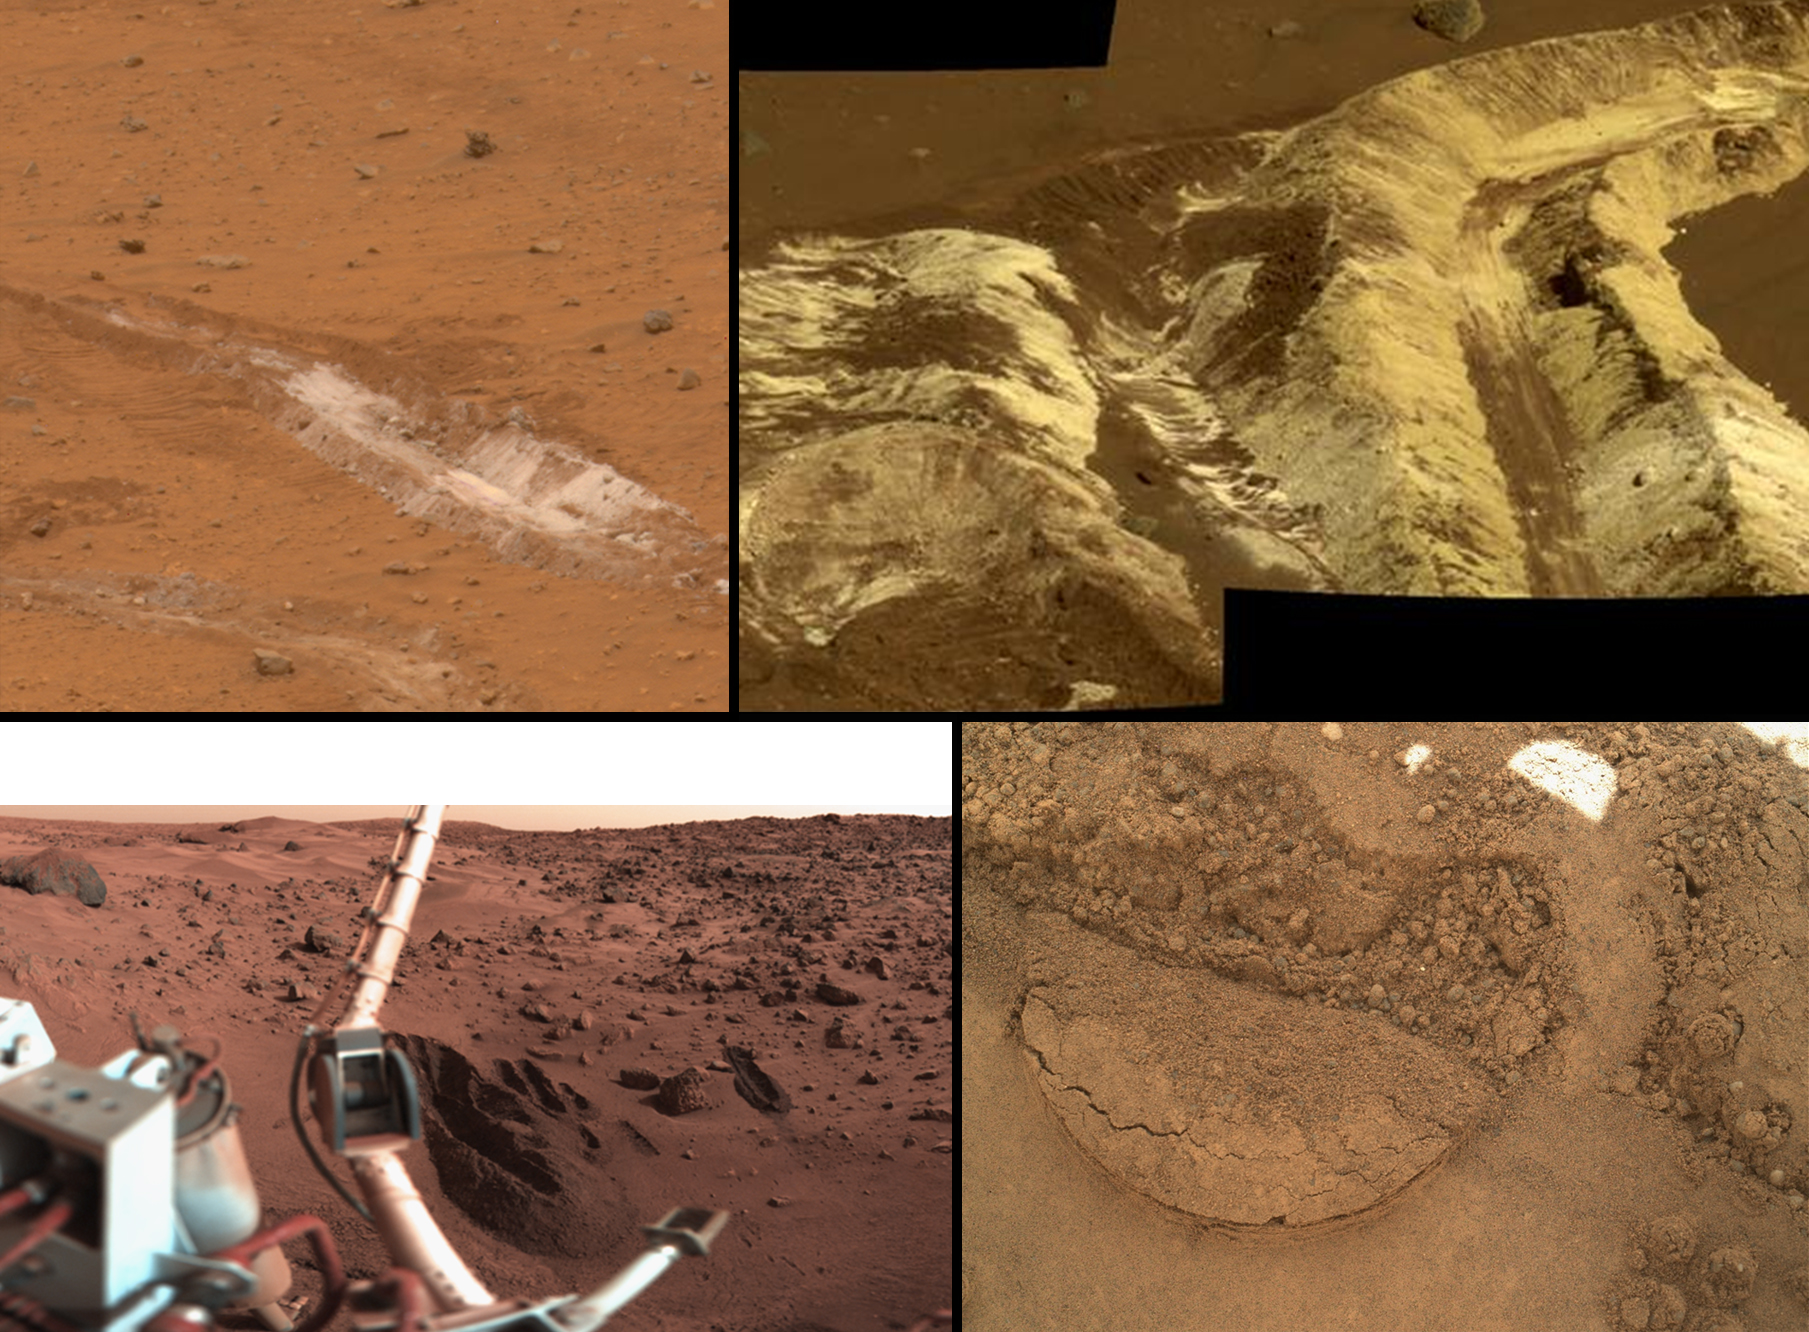 This series of photographs produced by NASA shows a variety of soil samples being taken from Mars. These investigations occurred in the landing regions of several Rover missions, from the Gusev Crater to the Curiosity's Gale Crater. NASA noted that similar samples of soil were taken from all sites.  Attribution: By NASA/JPL-Caltech [Public domain], via Wikimedia Commons